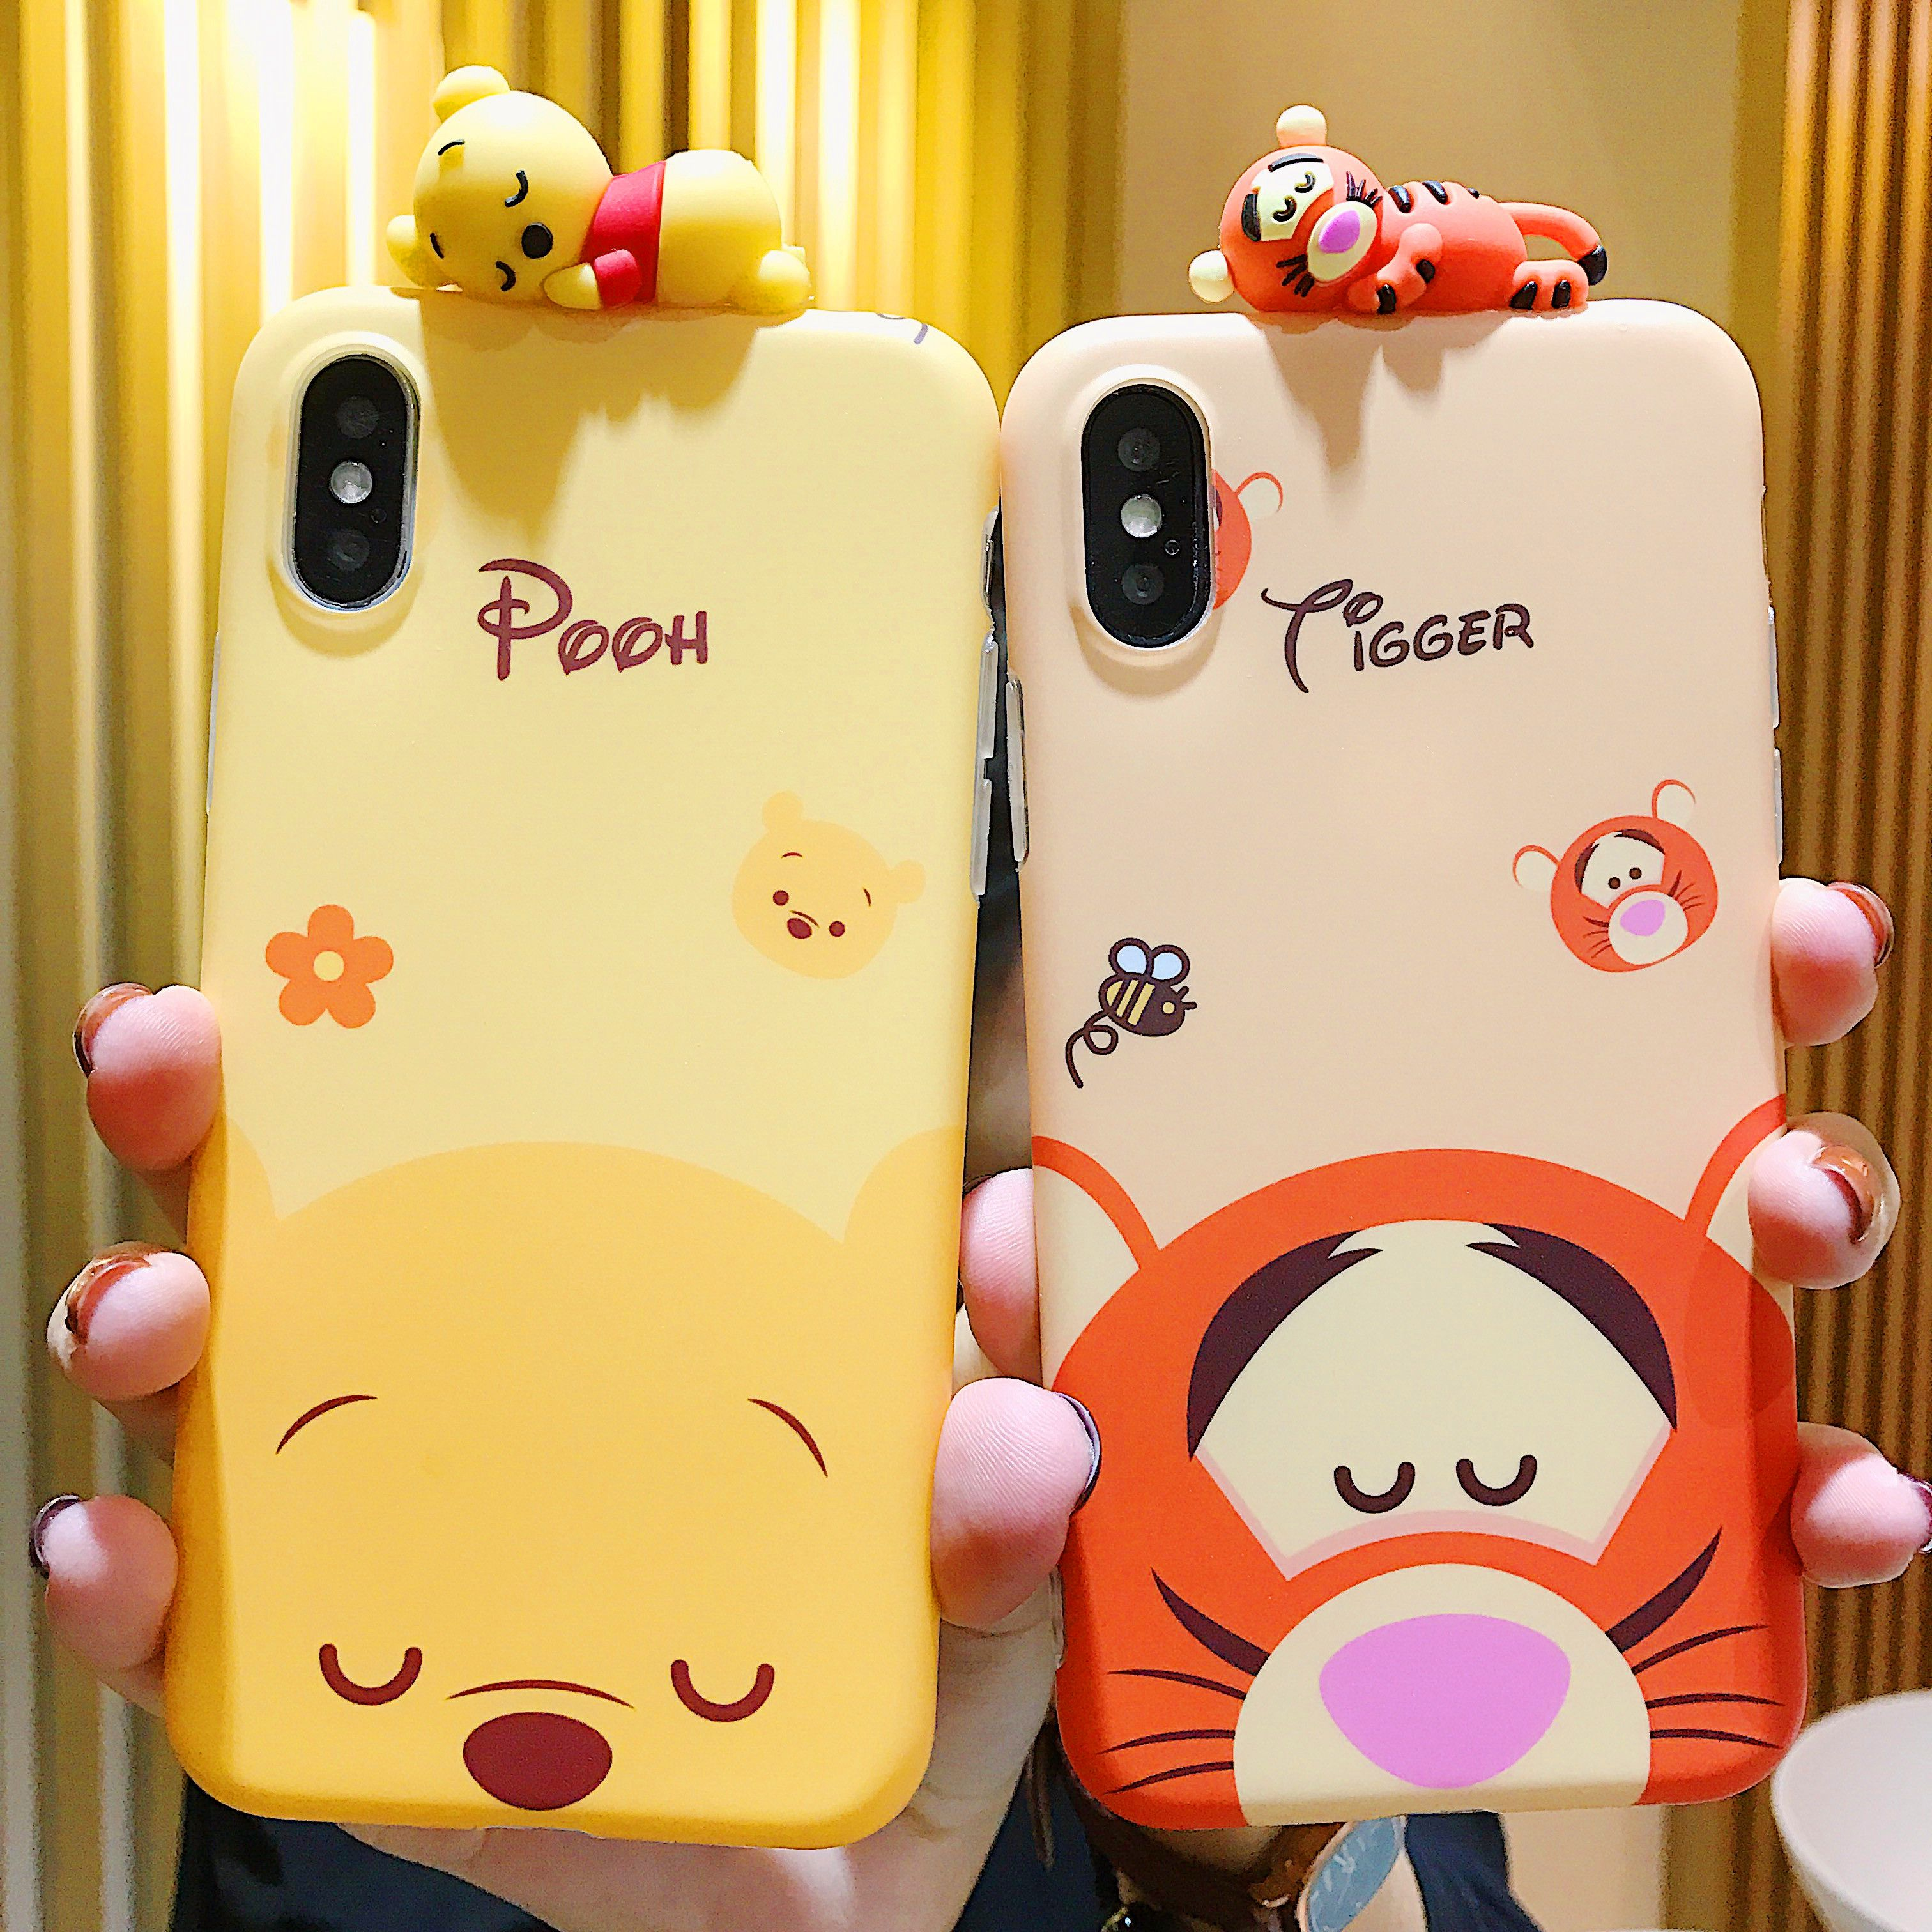 Kawaii Winnie And Tiger Phone Case for iphone 6/6s/6plus/7/7plus/8/8P/X/XS/XR/XS Max